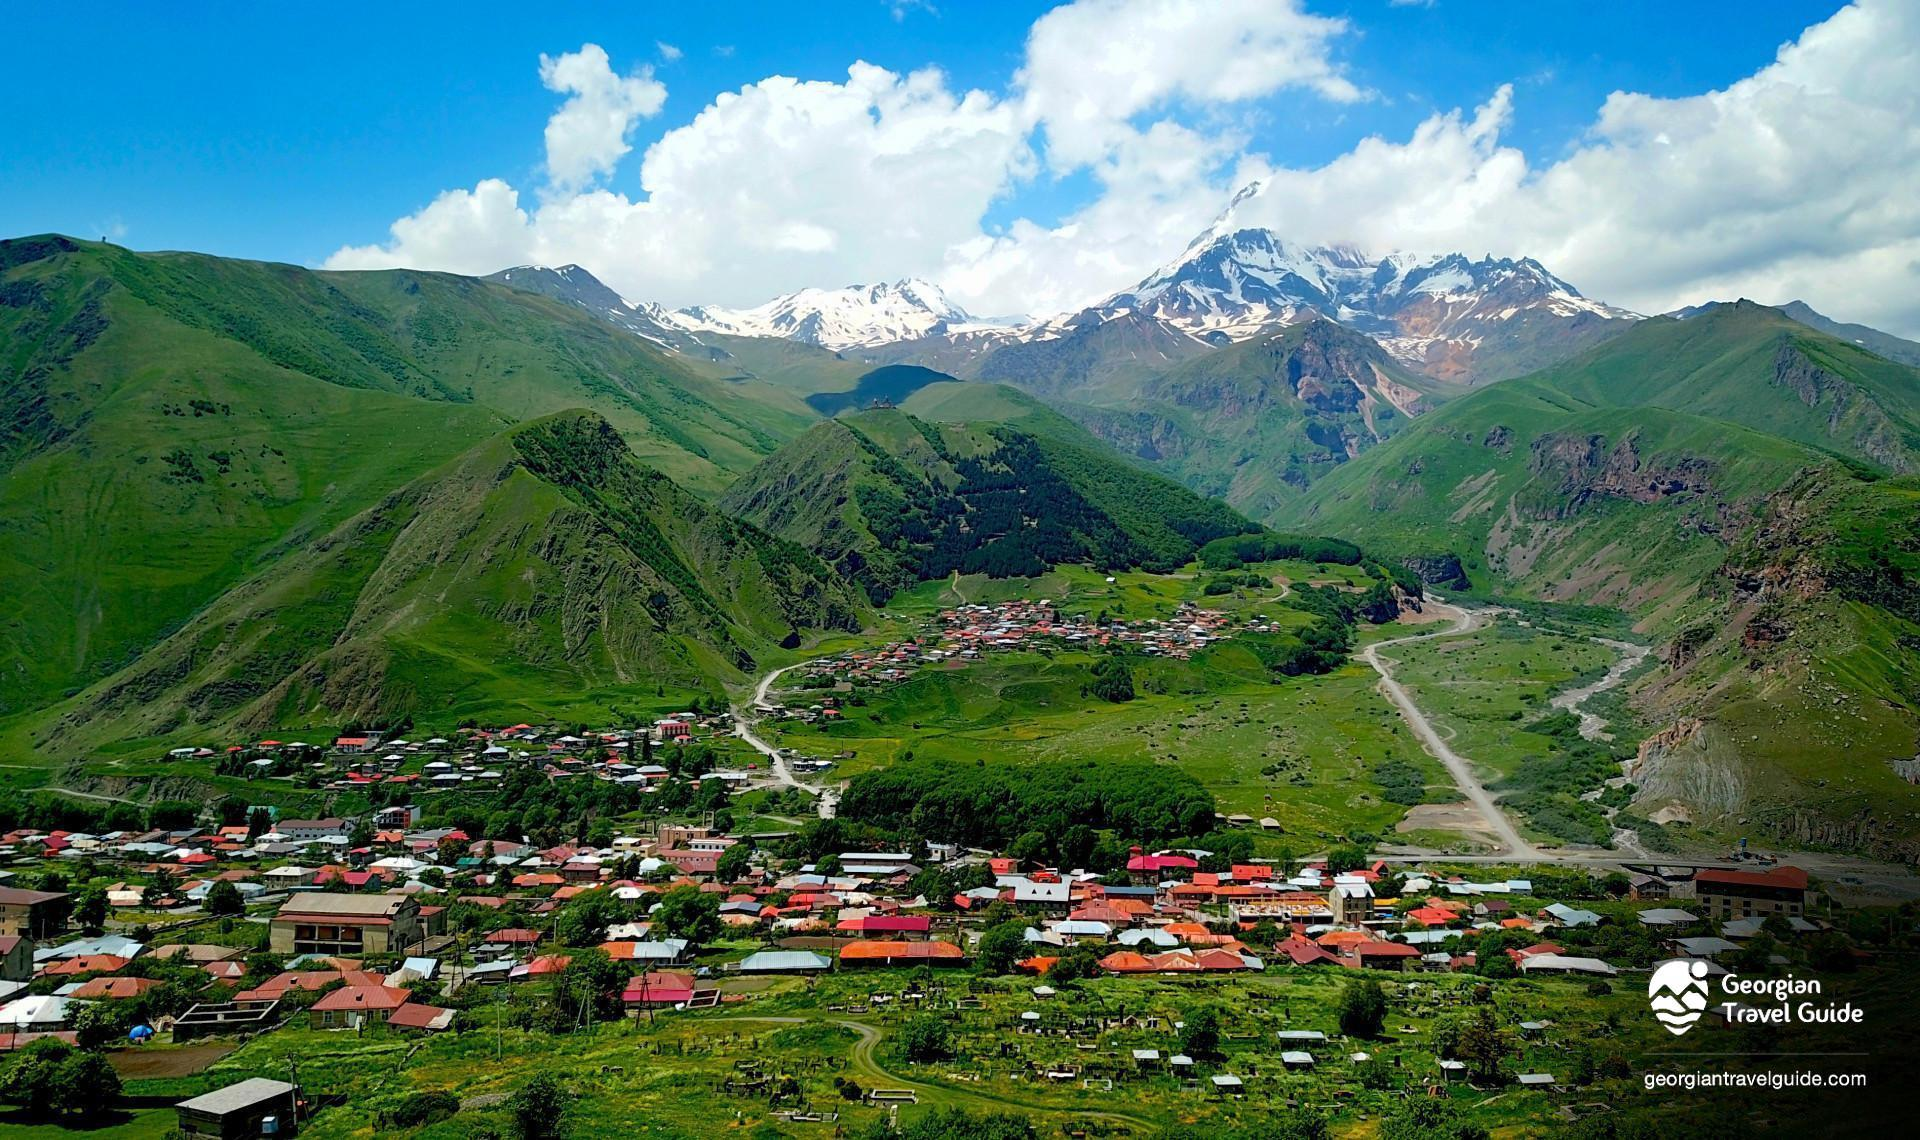 Mount Kazbek view from Kazbegi, Степанцминда Казбеги